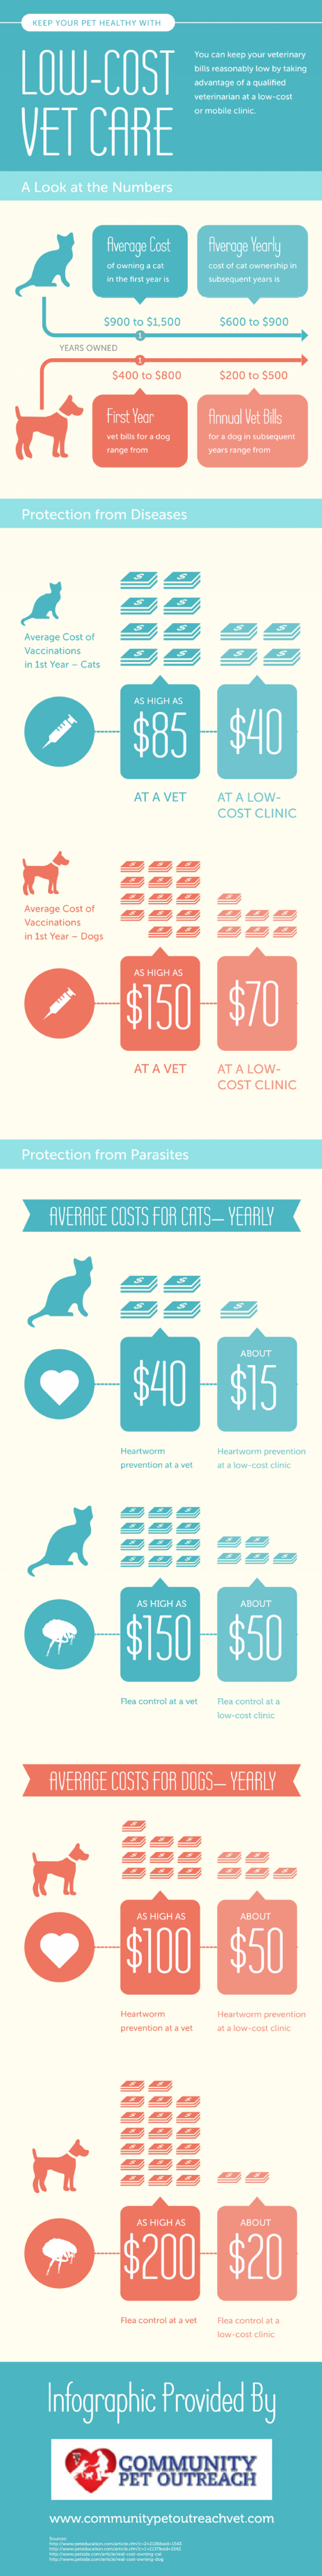 Keep Your Pet Healthy with Low-Cost Vet Care -  Infographic